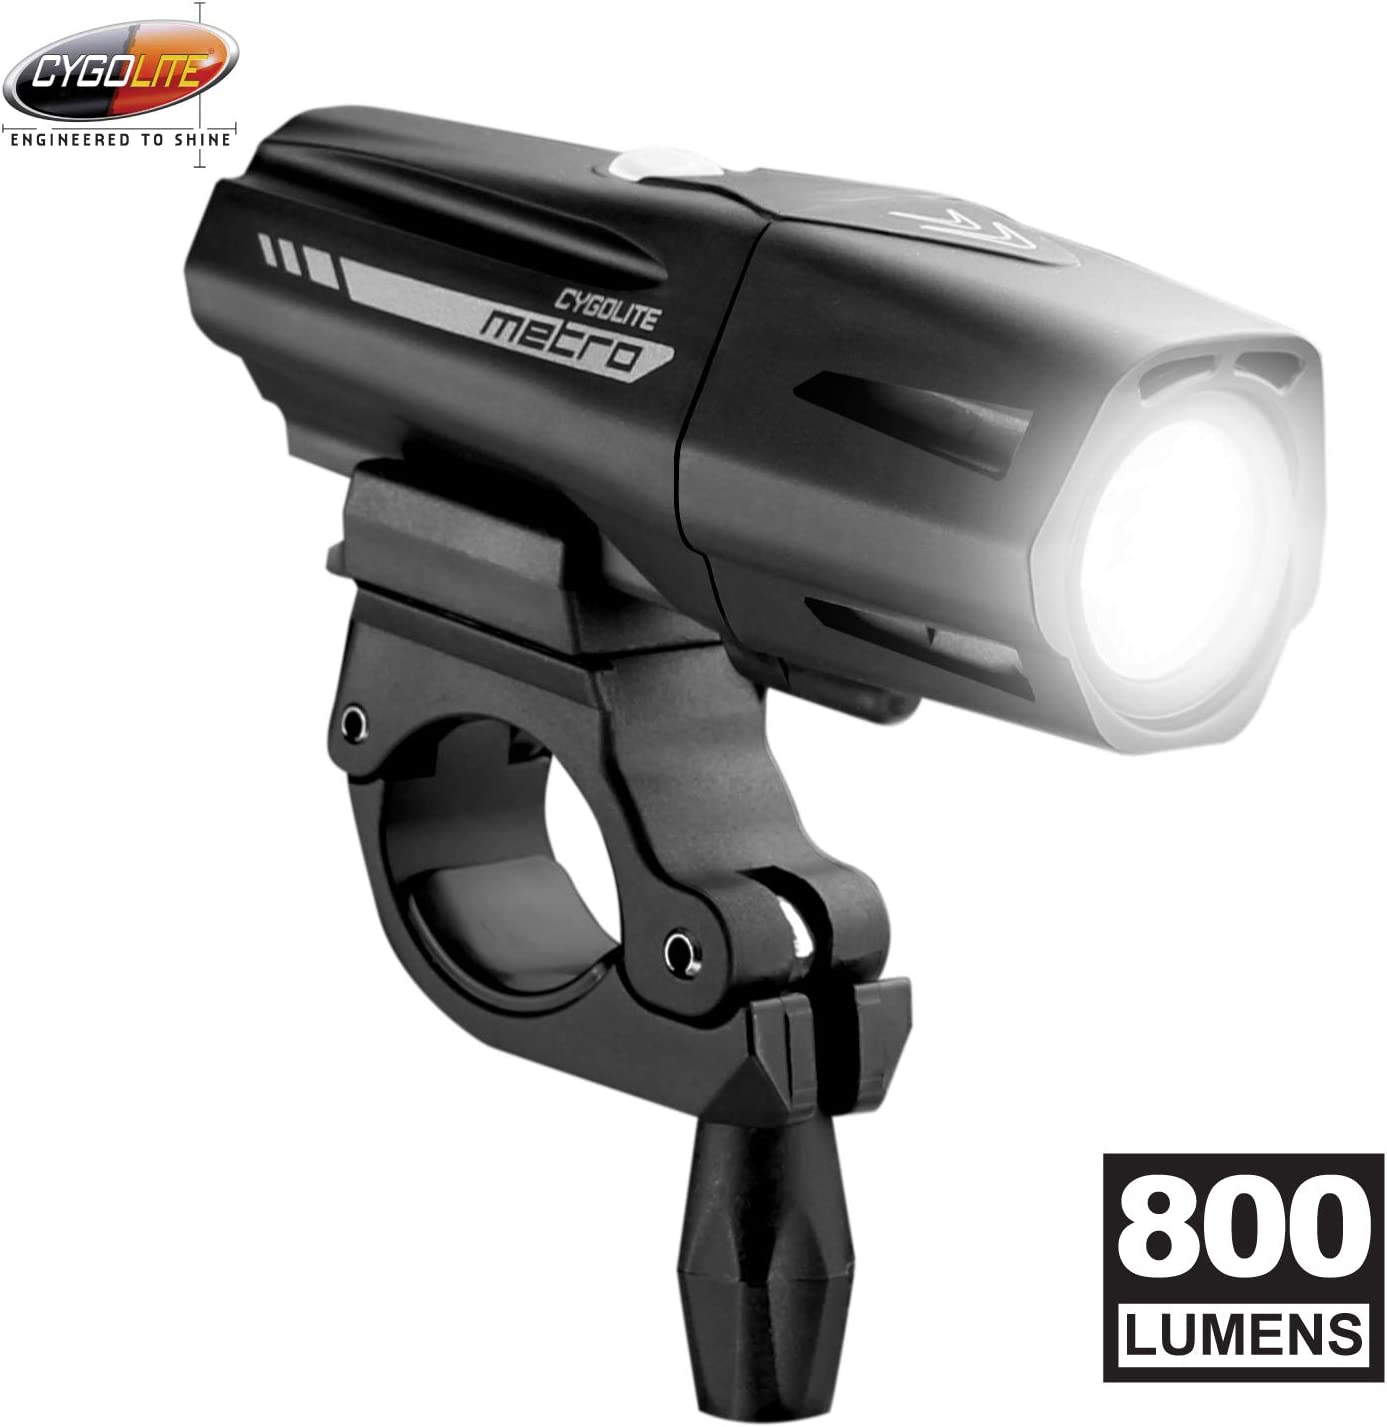 Cygolite Metro Plus 800 Lumen Bike Light 5 Night 3 Daytime Modes Compact Durable IP67 Waterproof Secured Hard Mount USB Rechargeable Headlight for Road, Mountain, Commuter Bicycles